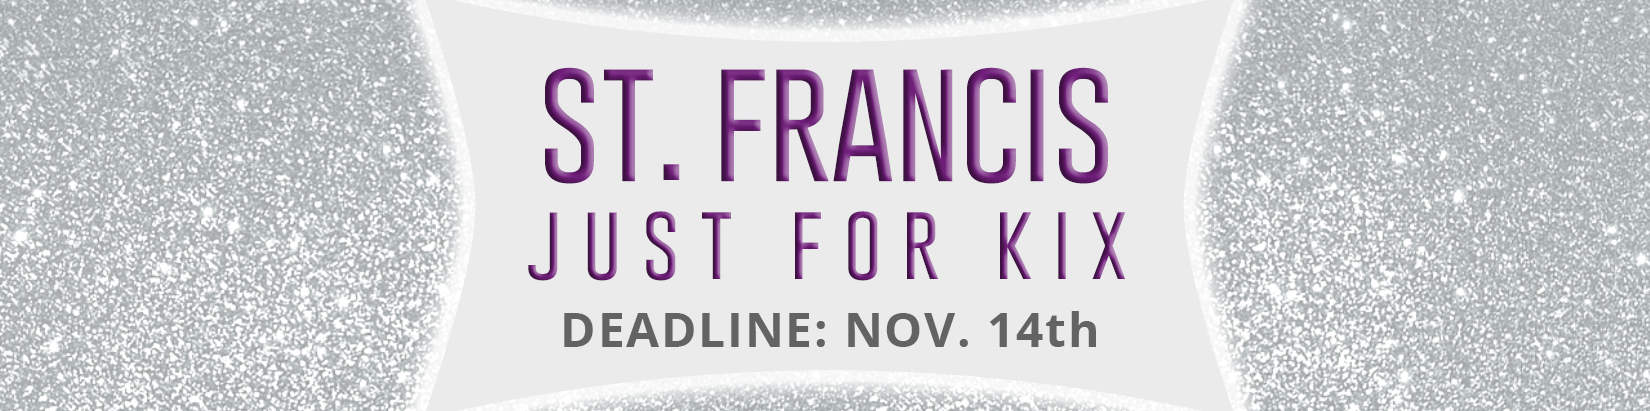 St. Francis Just For Kix